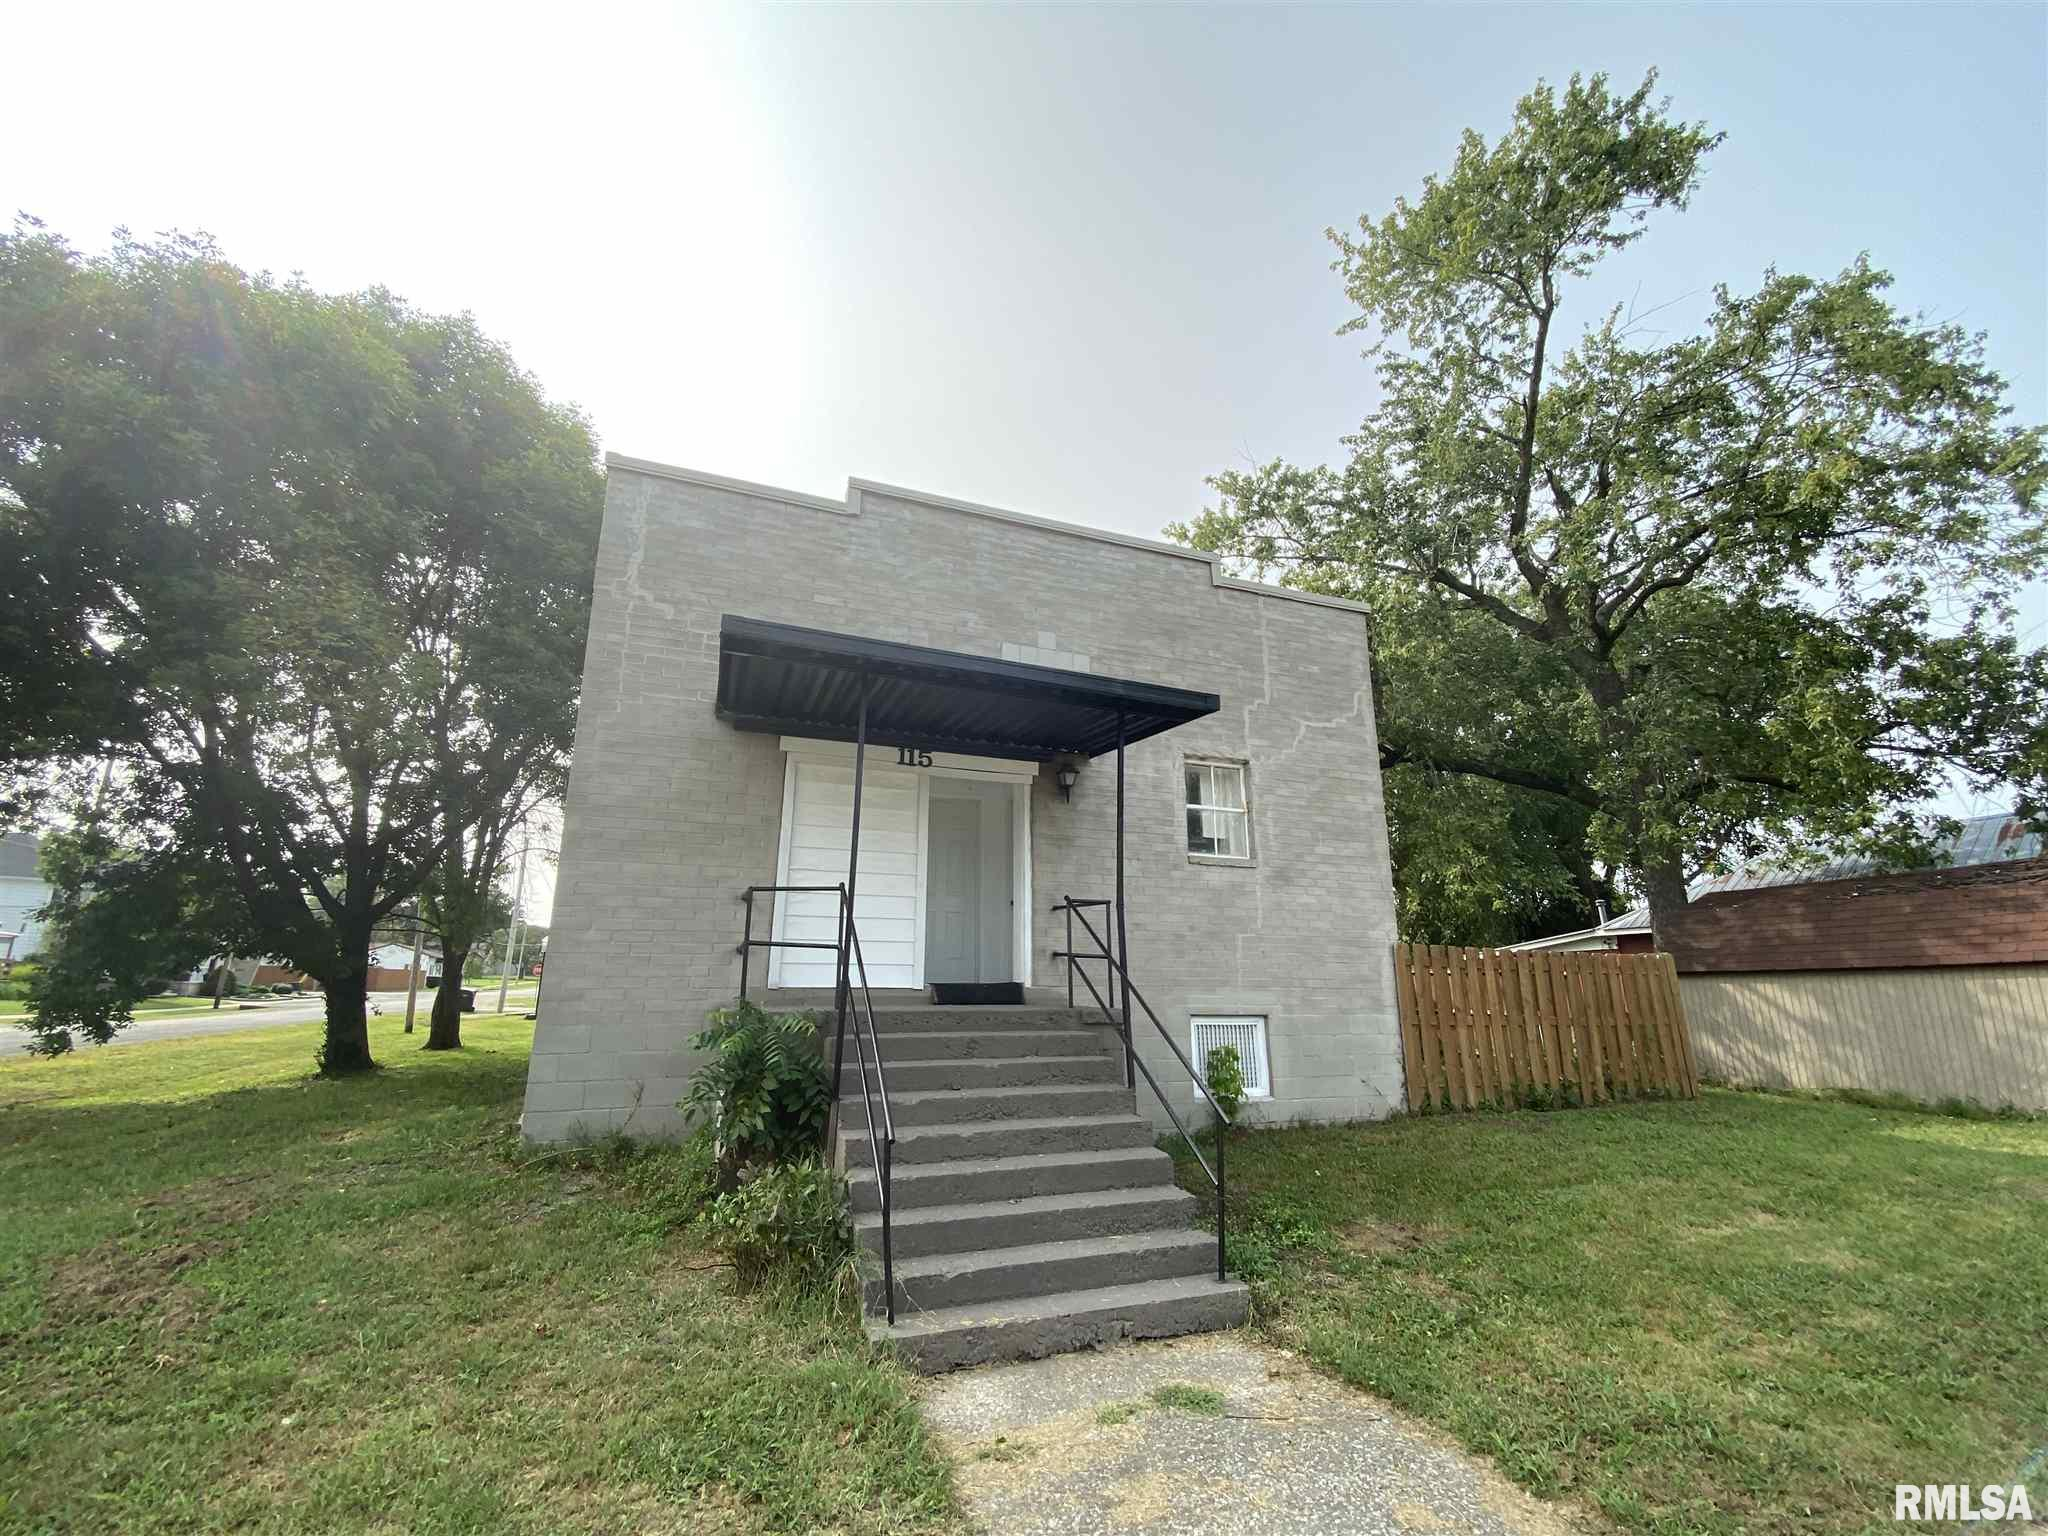 115 S 4TH Property Photo - Coulterville, IL real estate listing